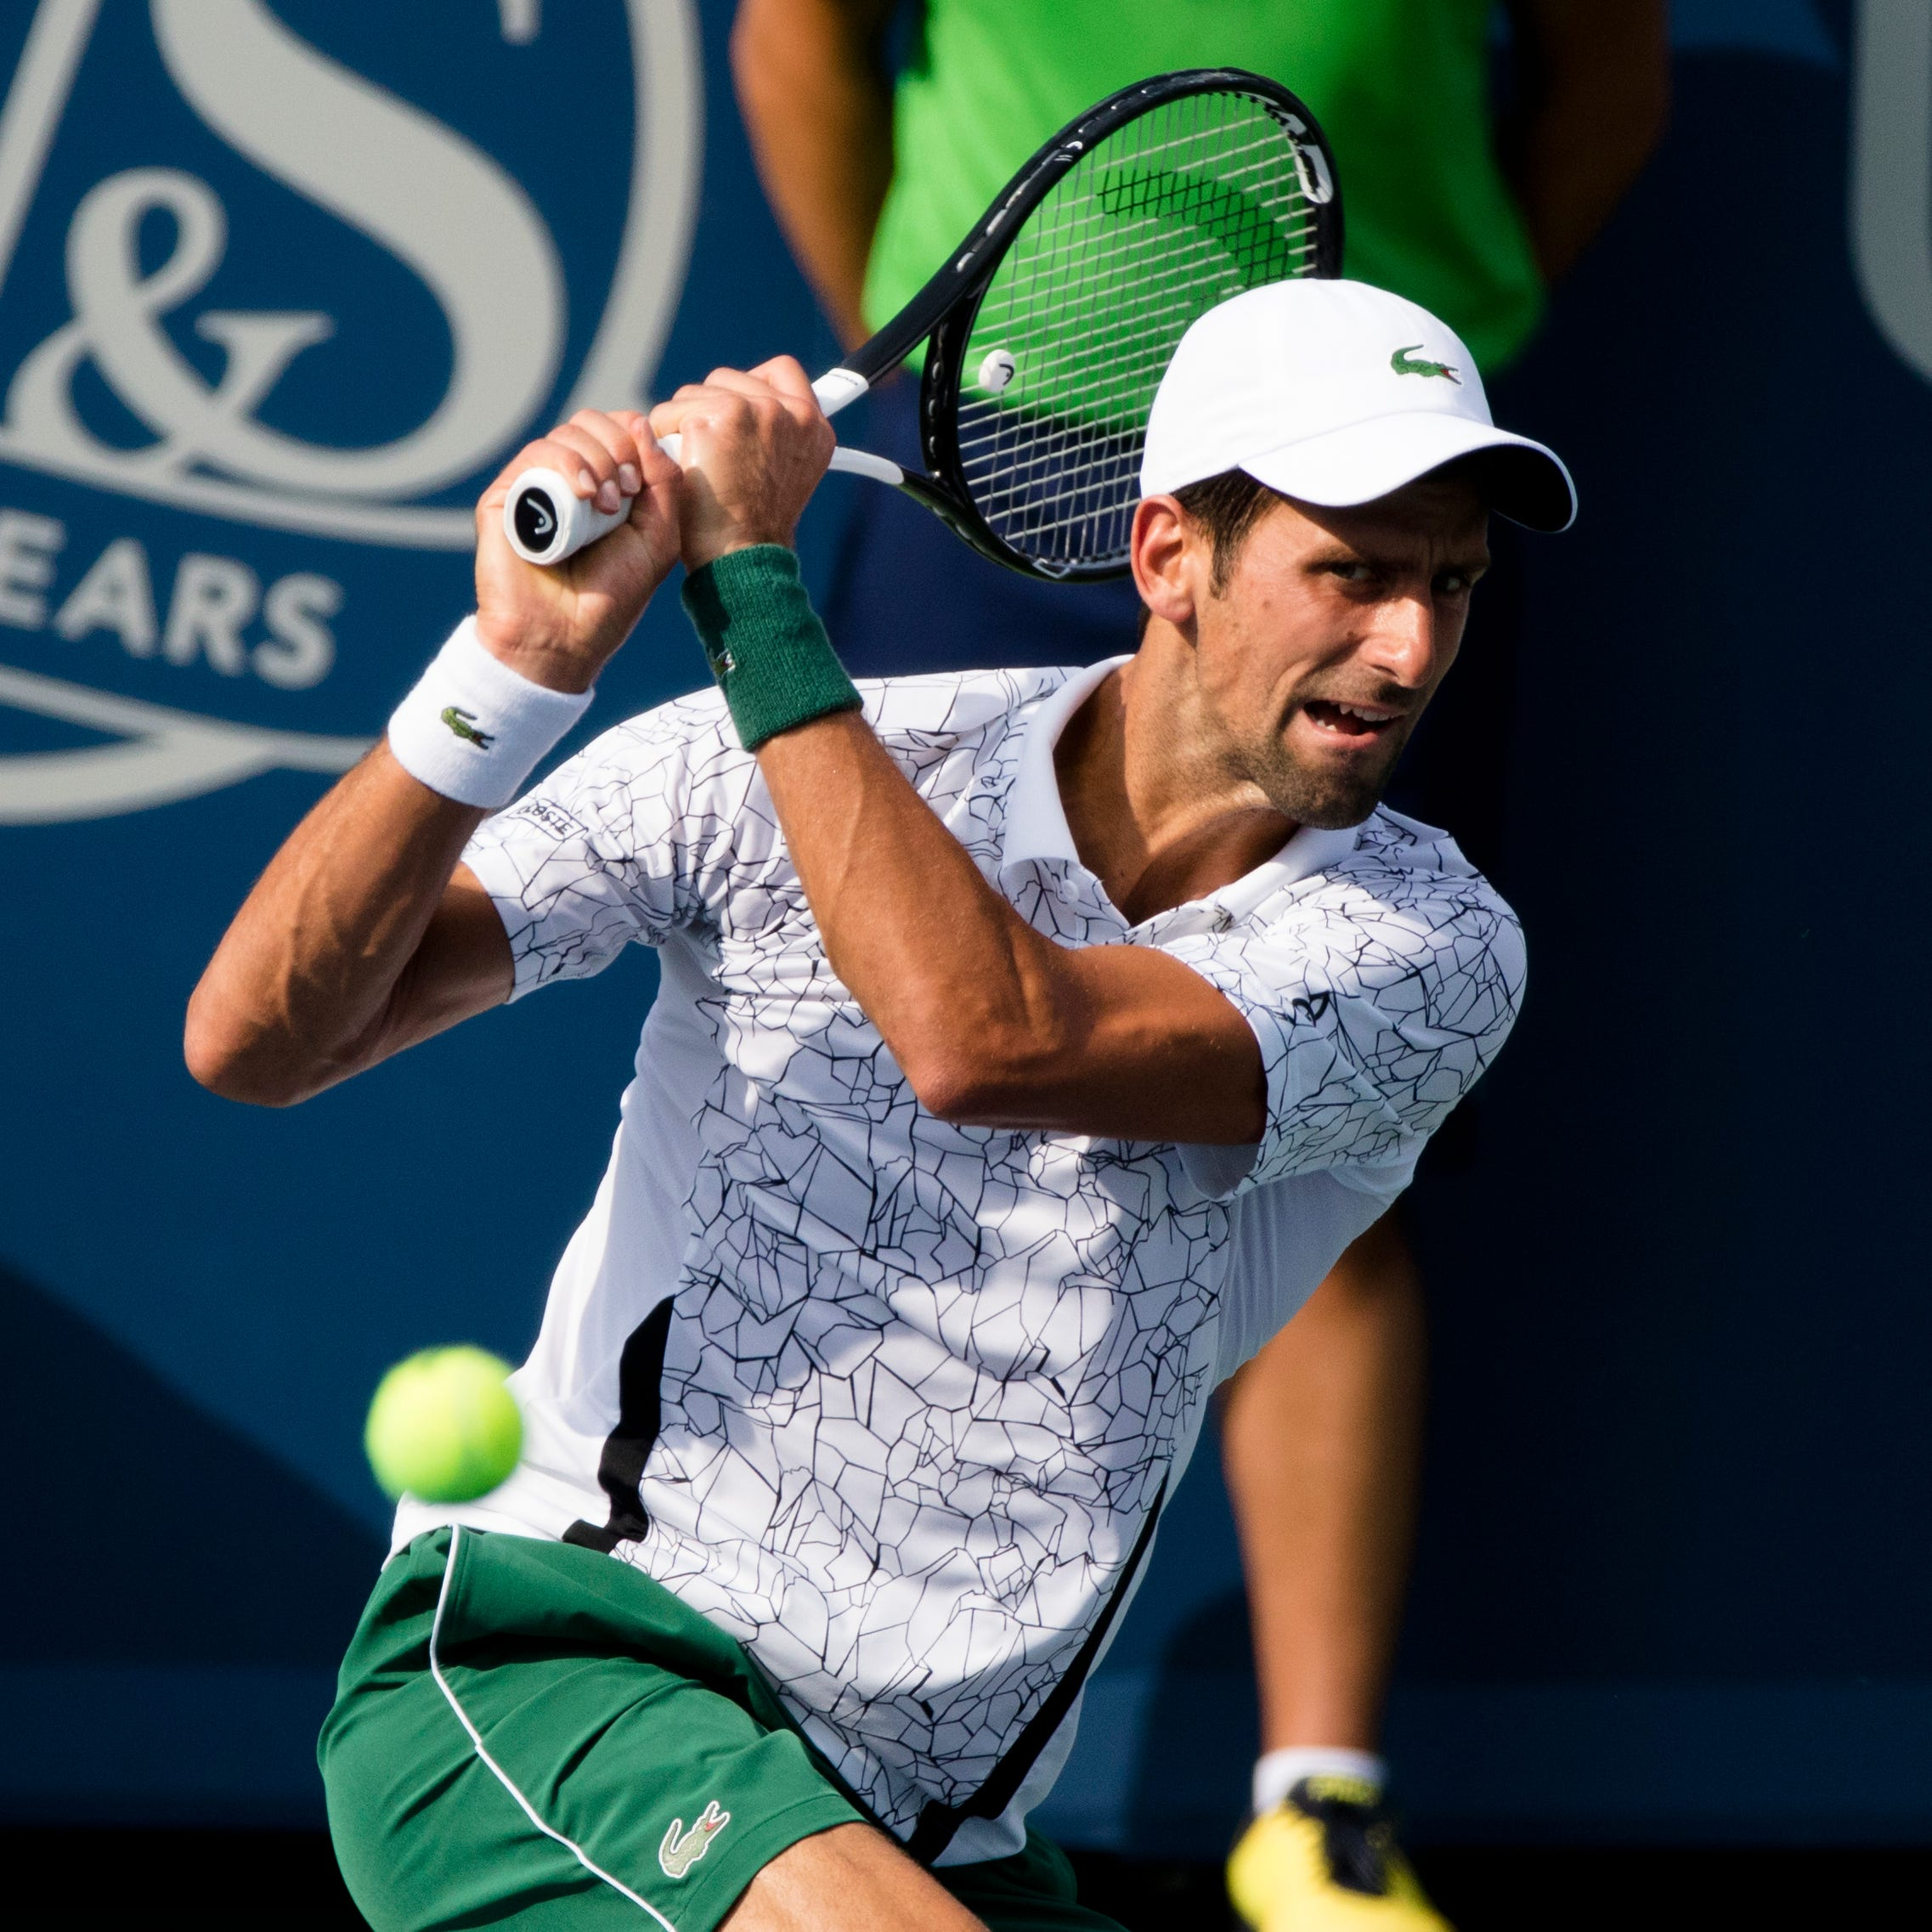 Novak Djokovic beats Roger Federer for 1st career Western & Southern Open tennis title